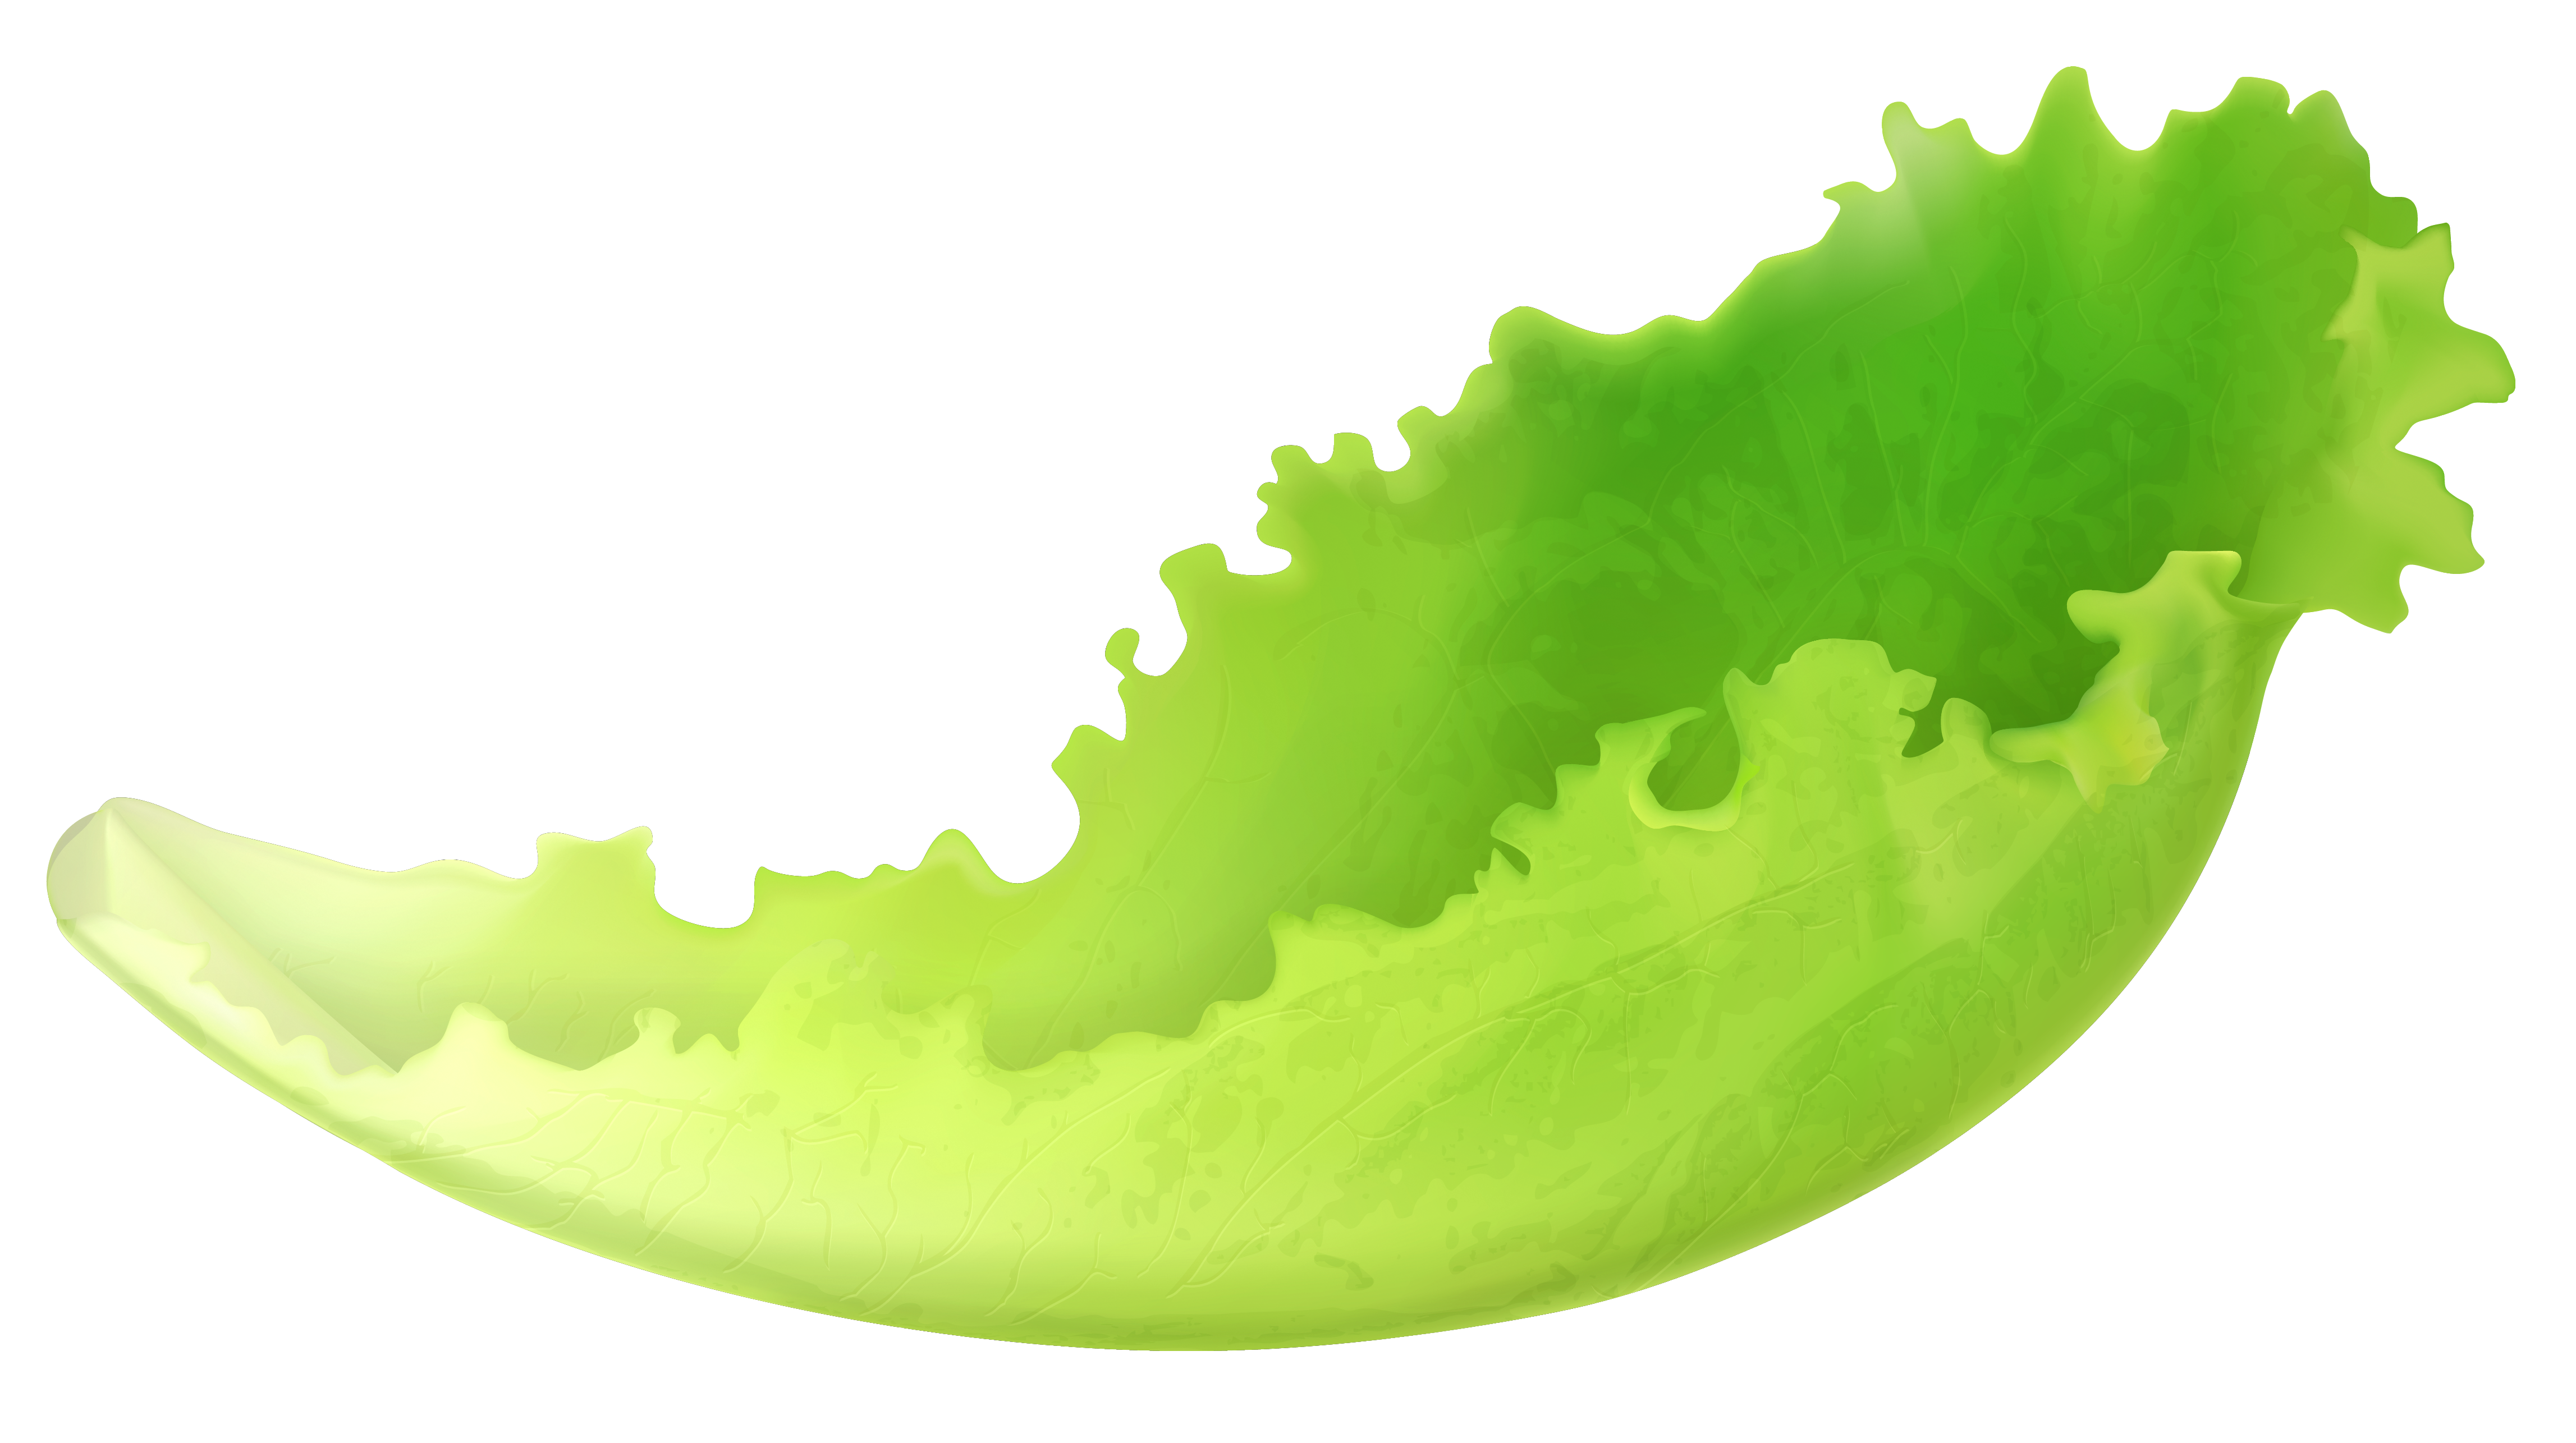 Lettuce leaf png. Clipart gallery yopriceville high